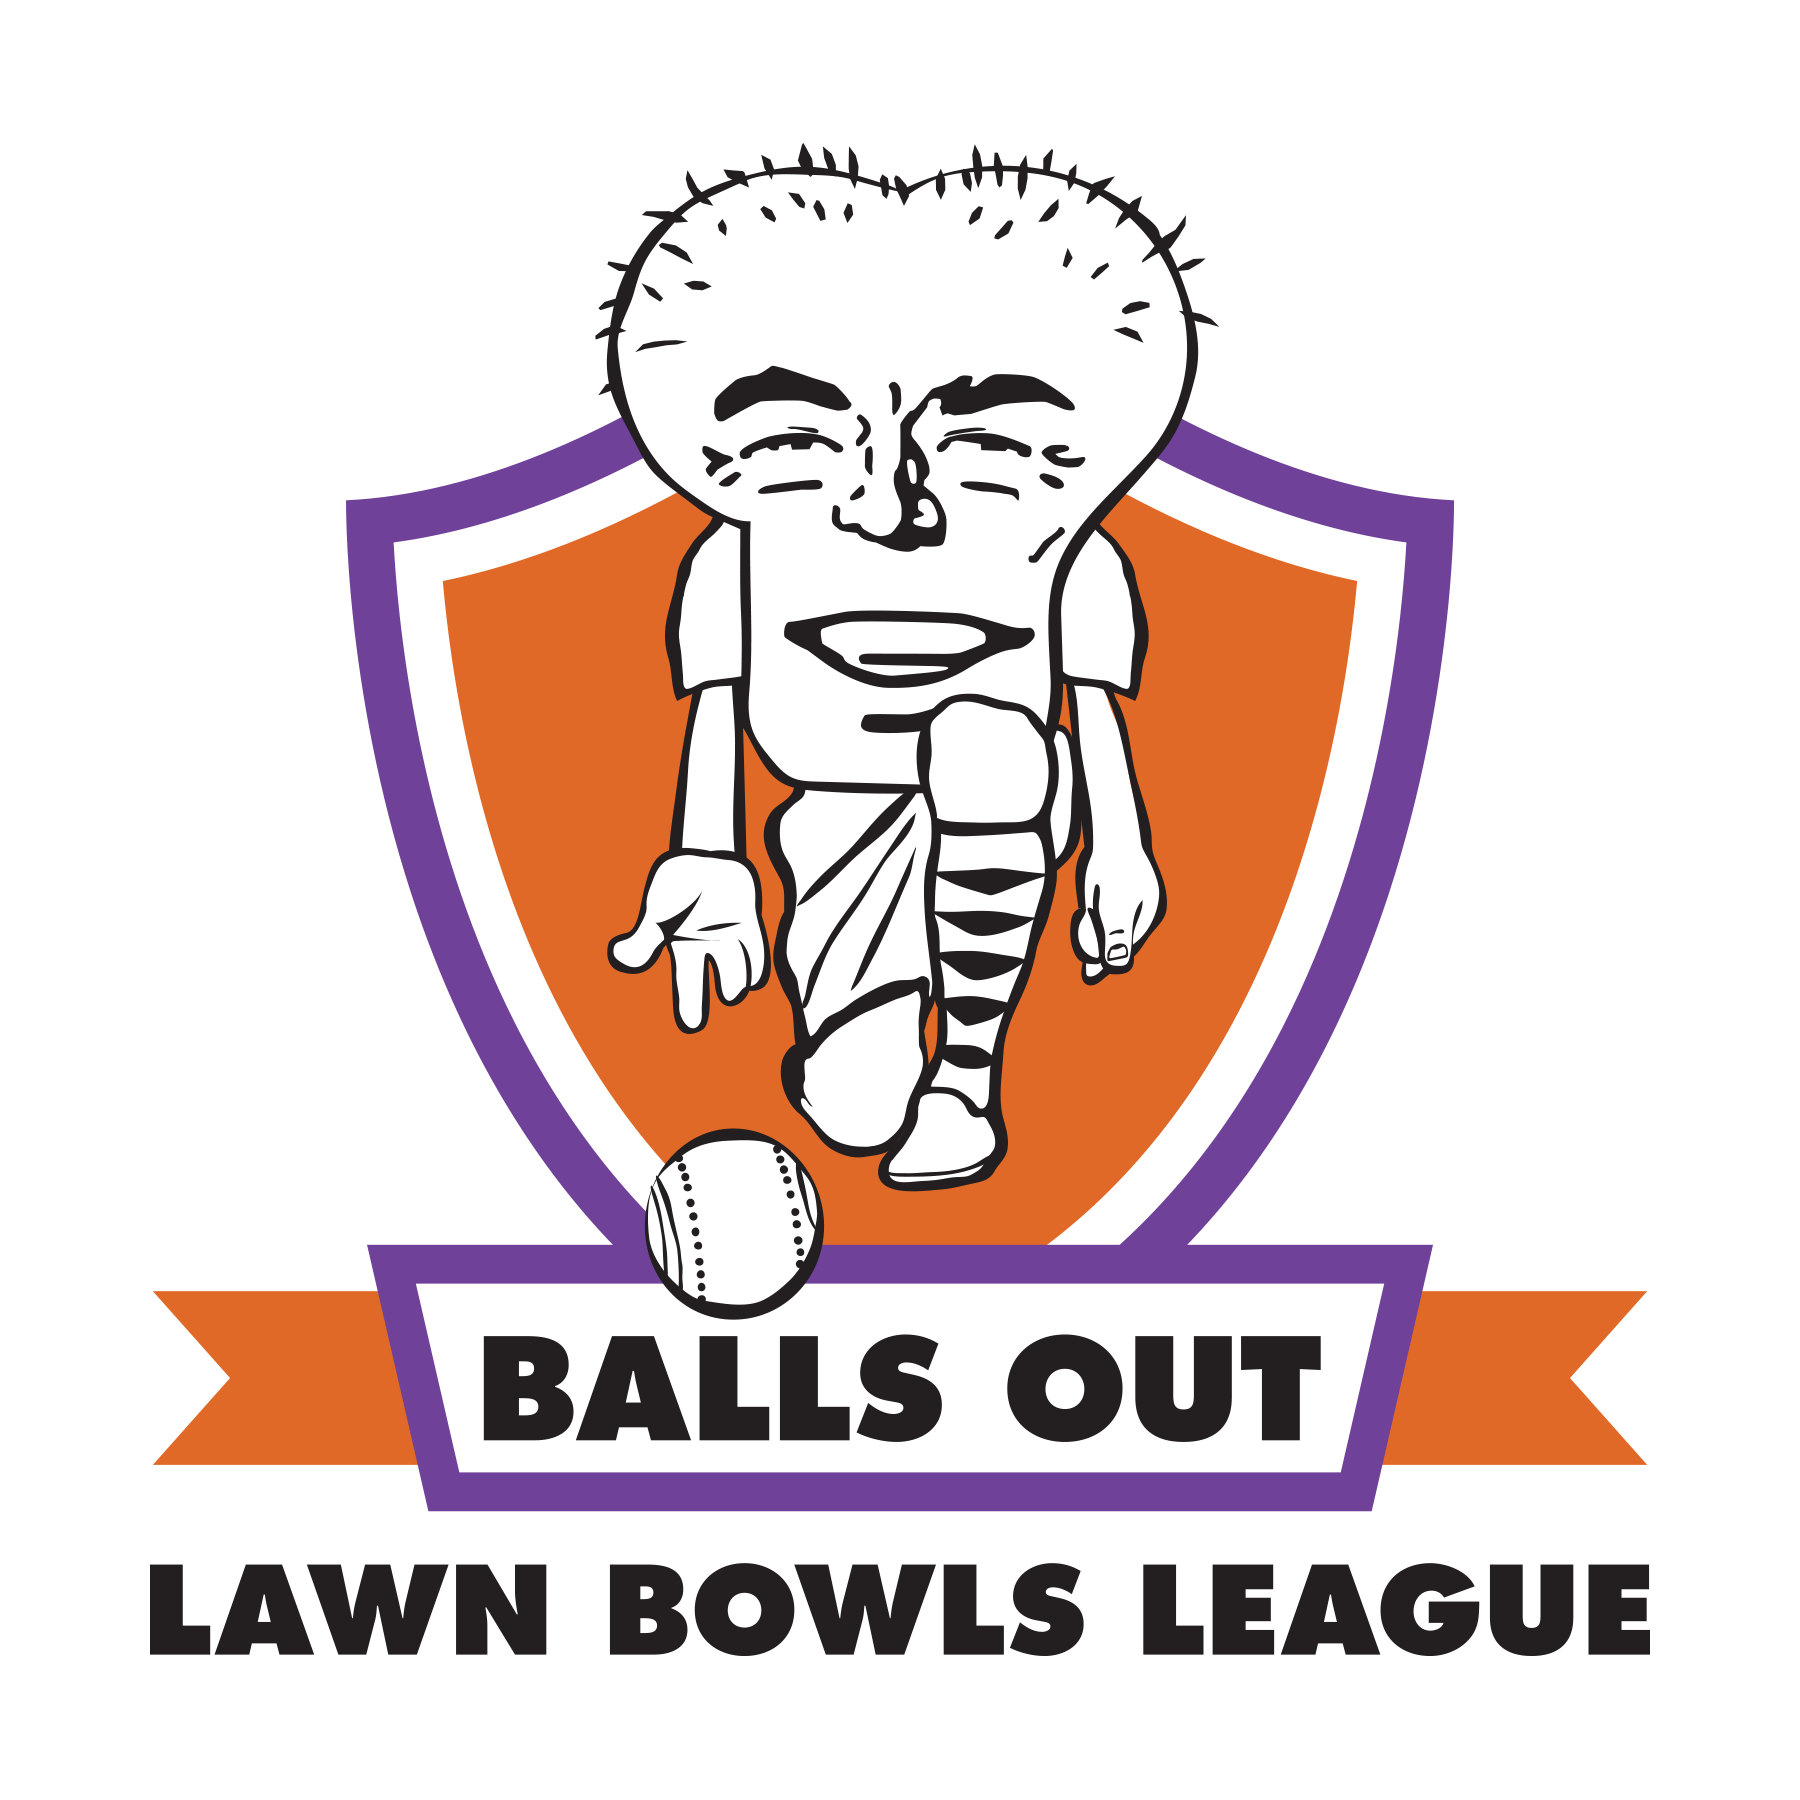 Oneball_LawnBowling_logo.png